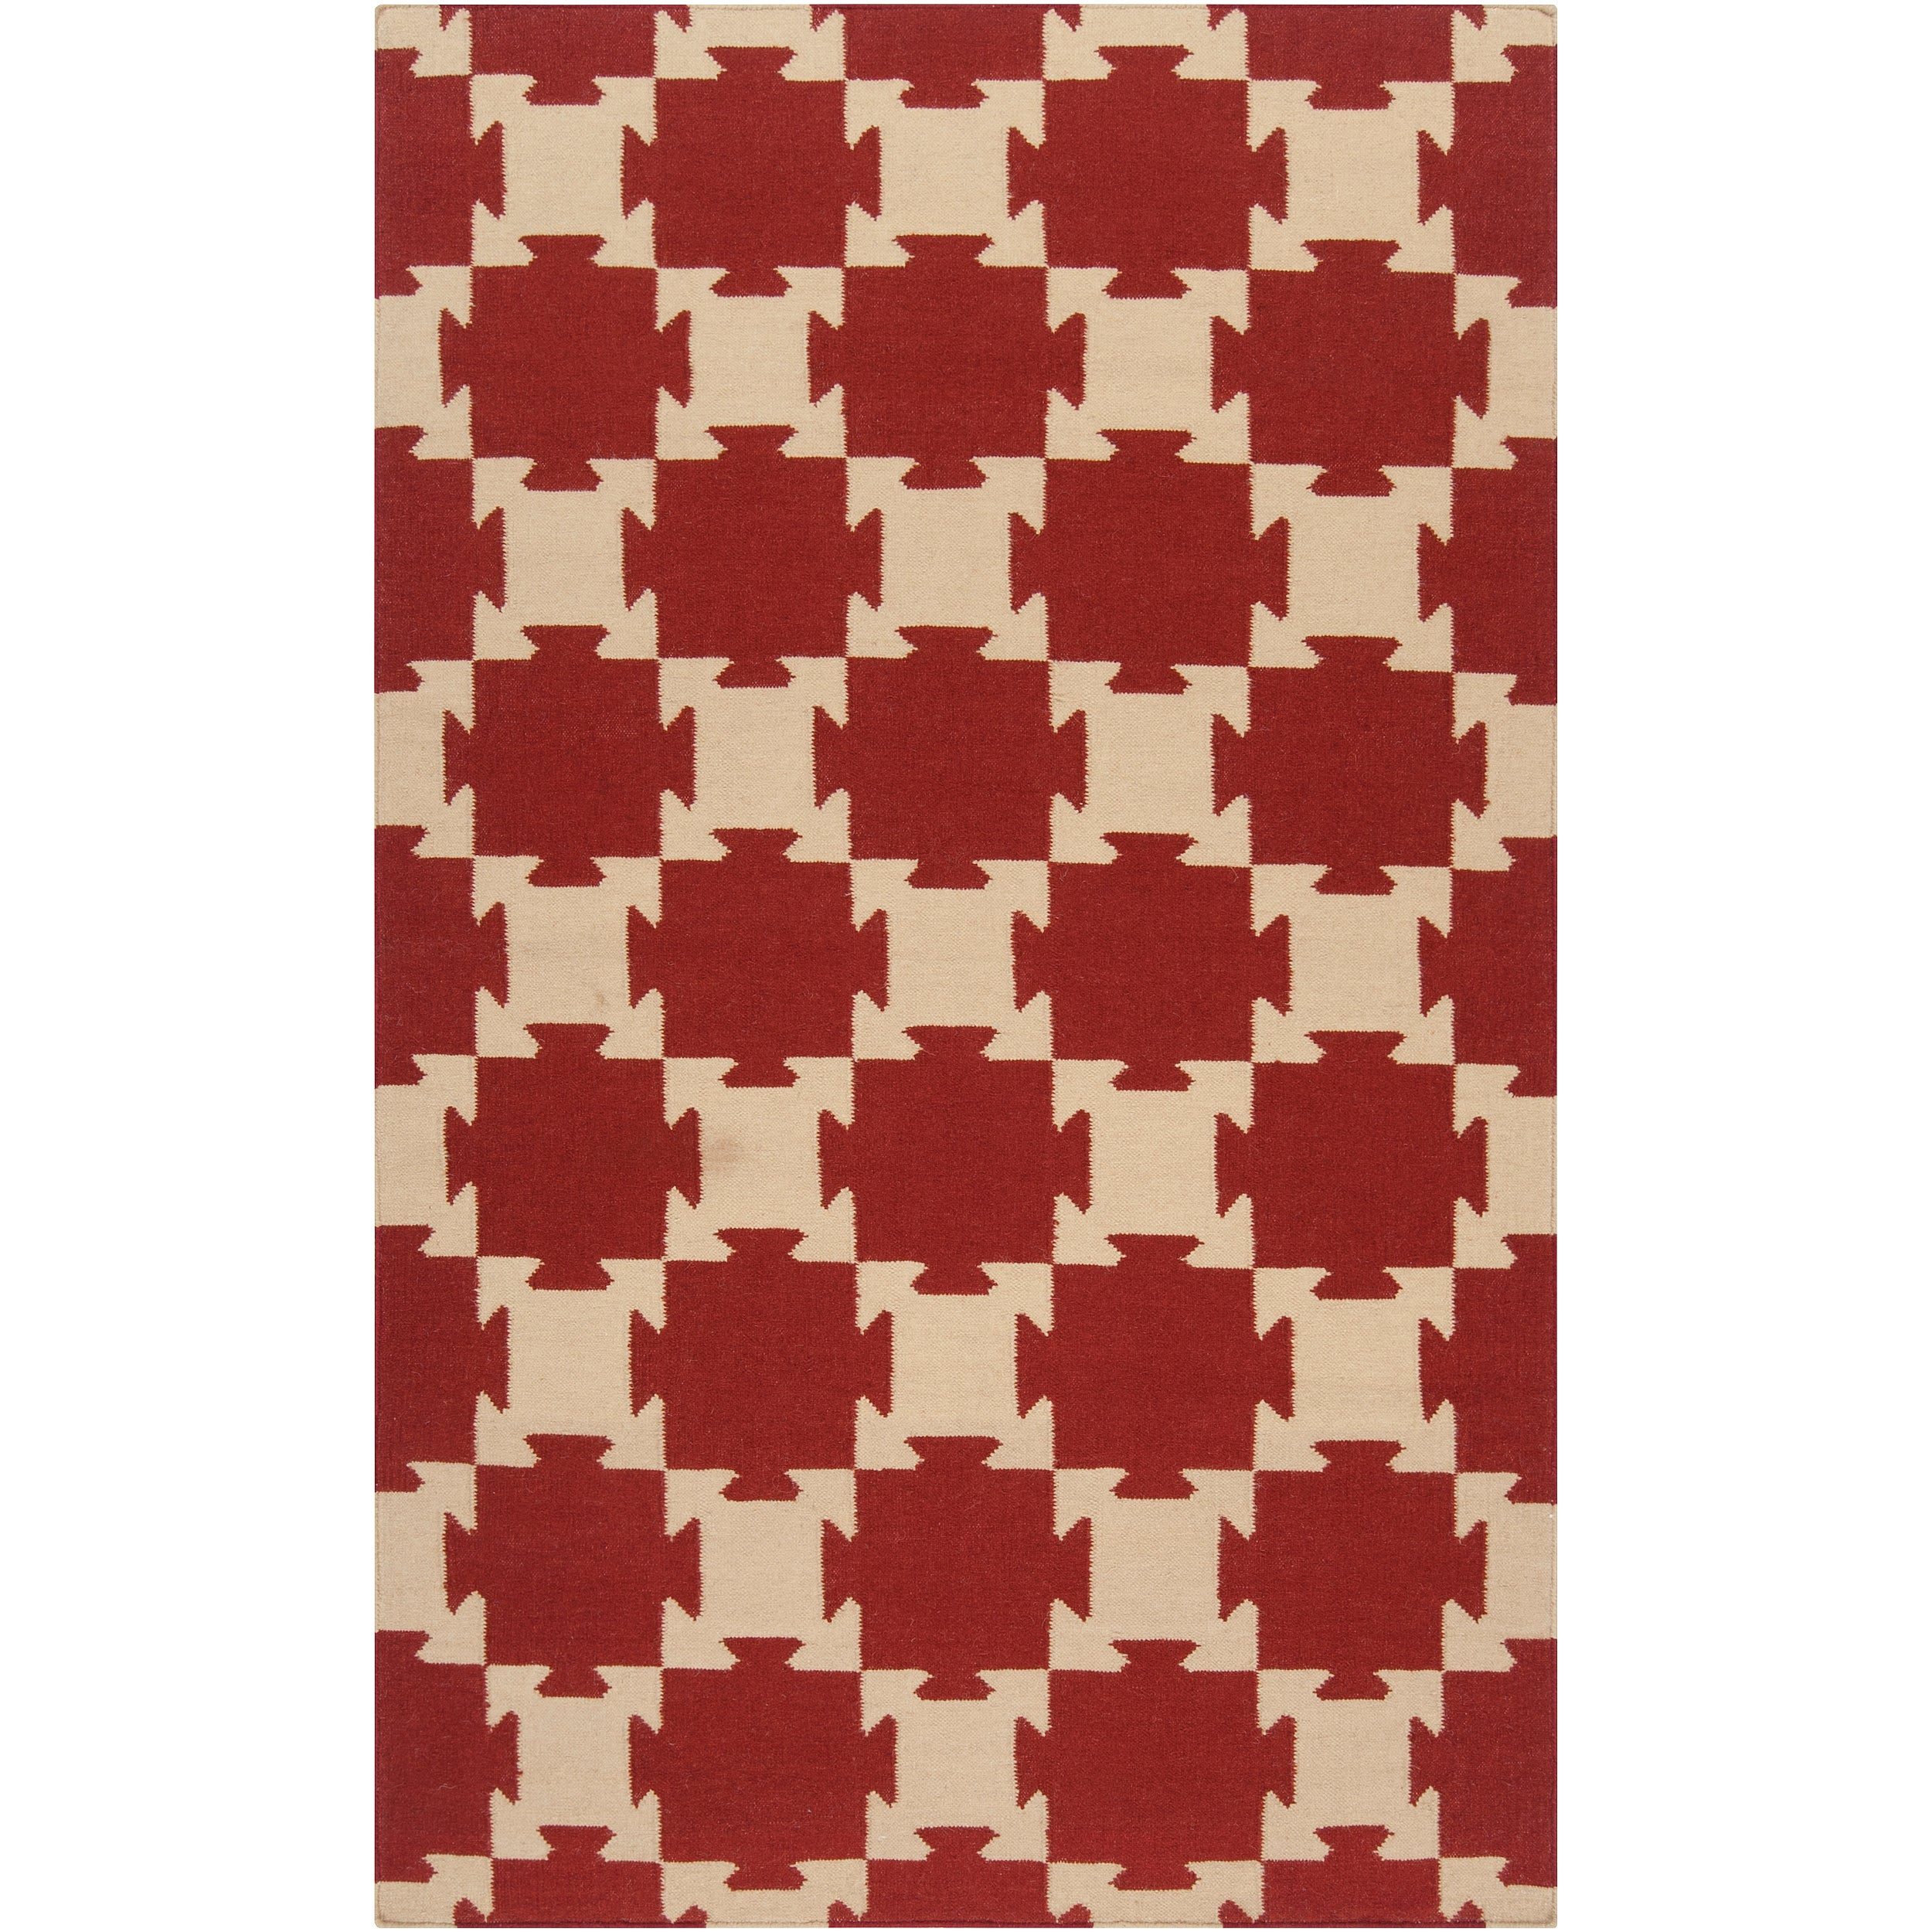 Hand-Woven Queens Bay Wool Area Rug (8' x 11') - Thumbnail 0